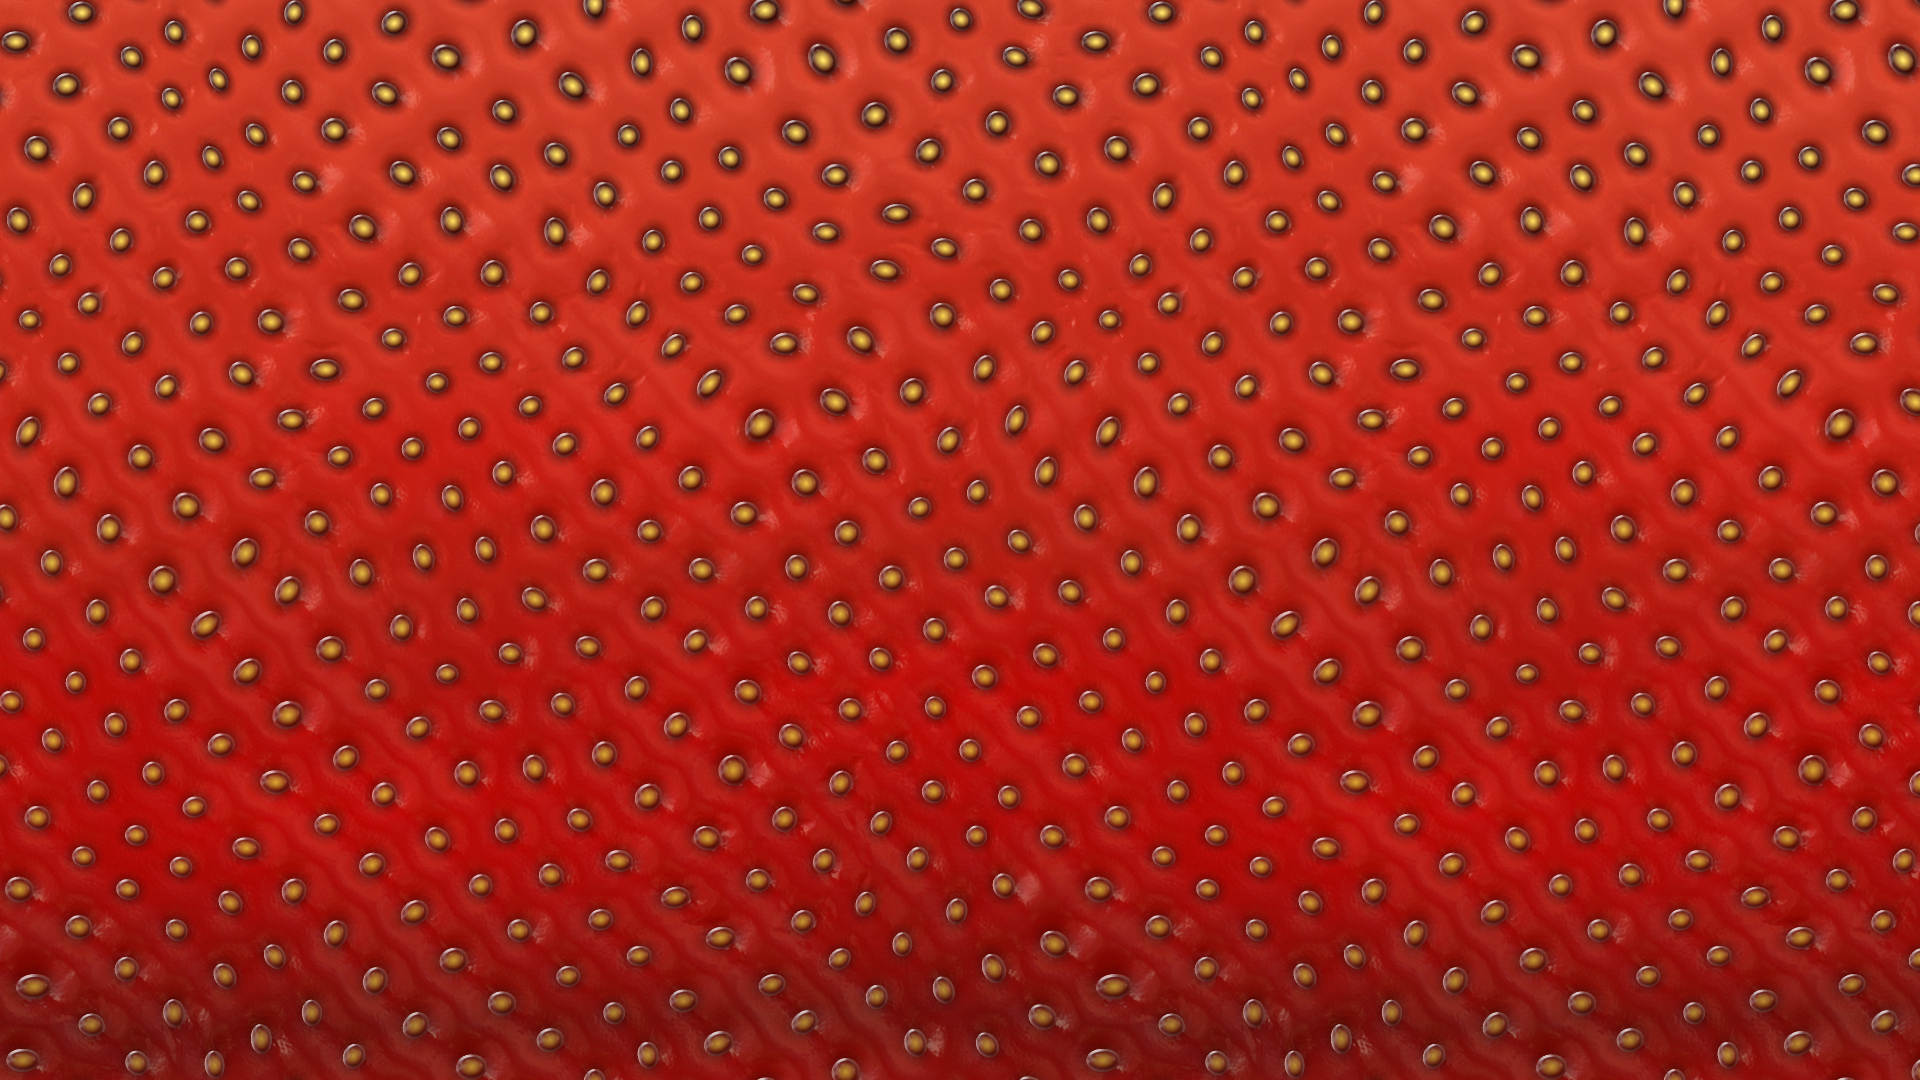 ... , strawberry texture, download photo, texture, background for website: https://bgfons.com/download/2570